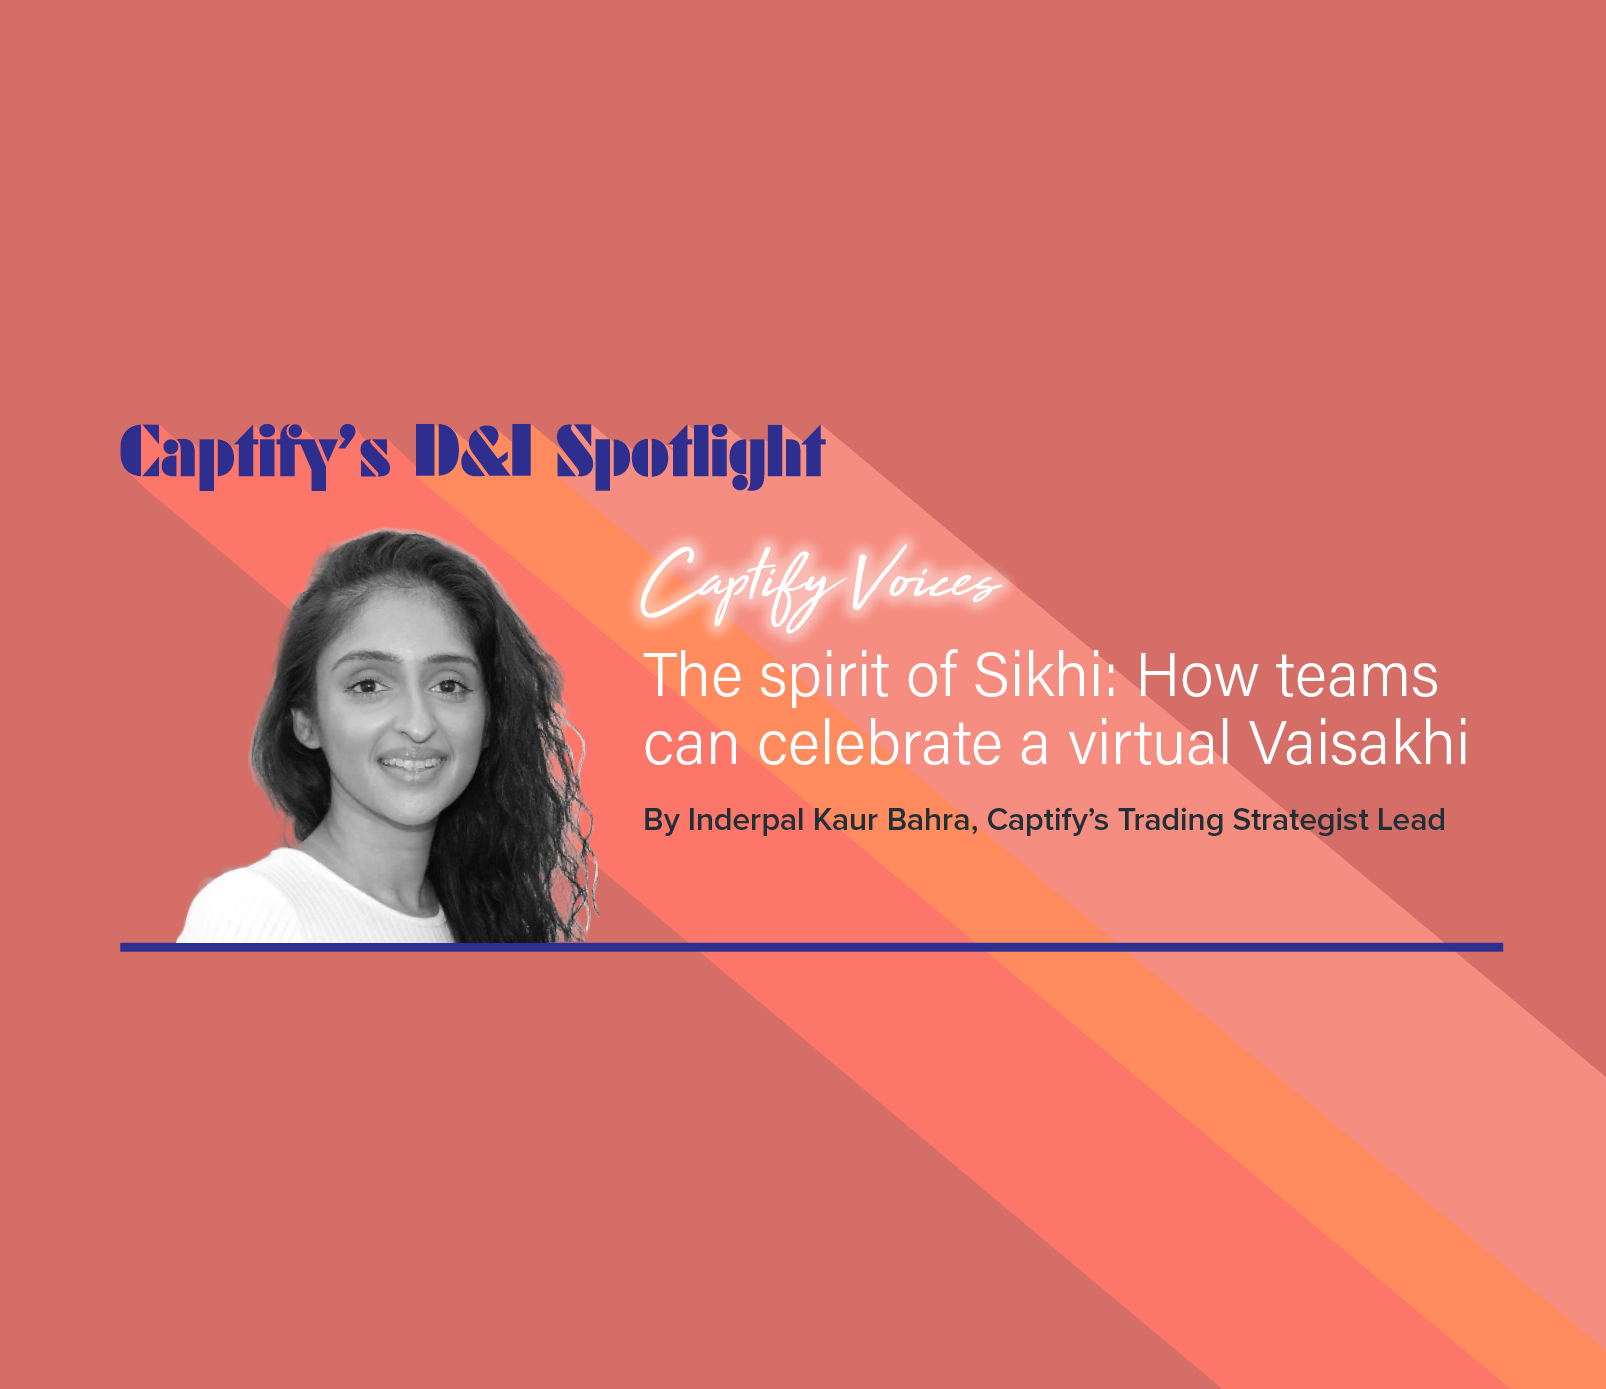 The Spirit of Sikhi: How Teams Can Celebrate A Virtual Vaisakhi